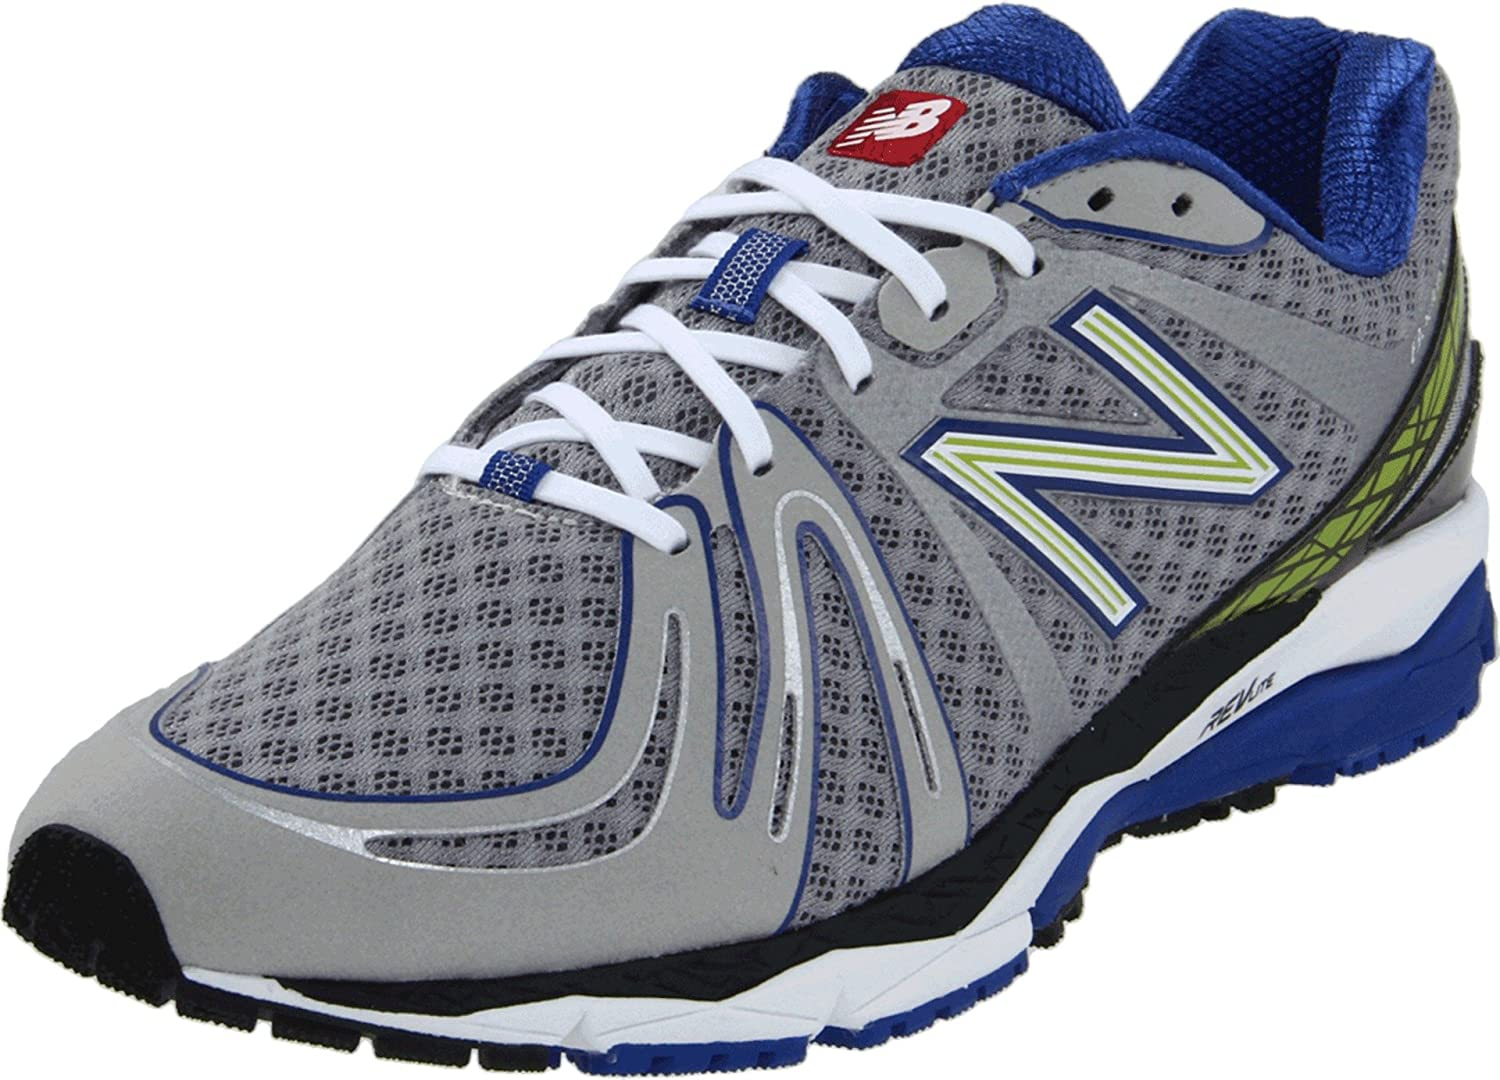 New Balance Men's M890B2 Running Shoe,SilverBlue,11 2E US